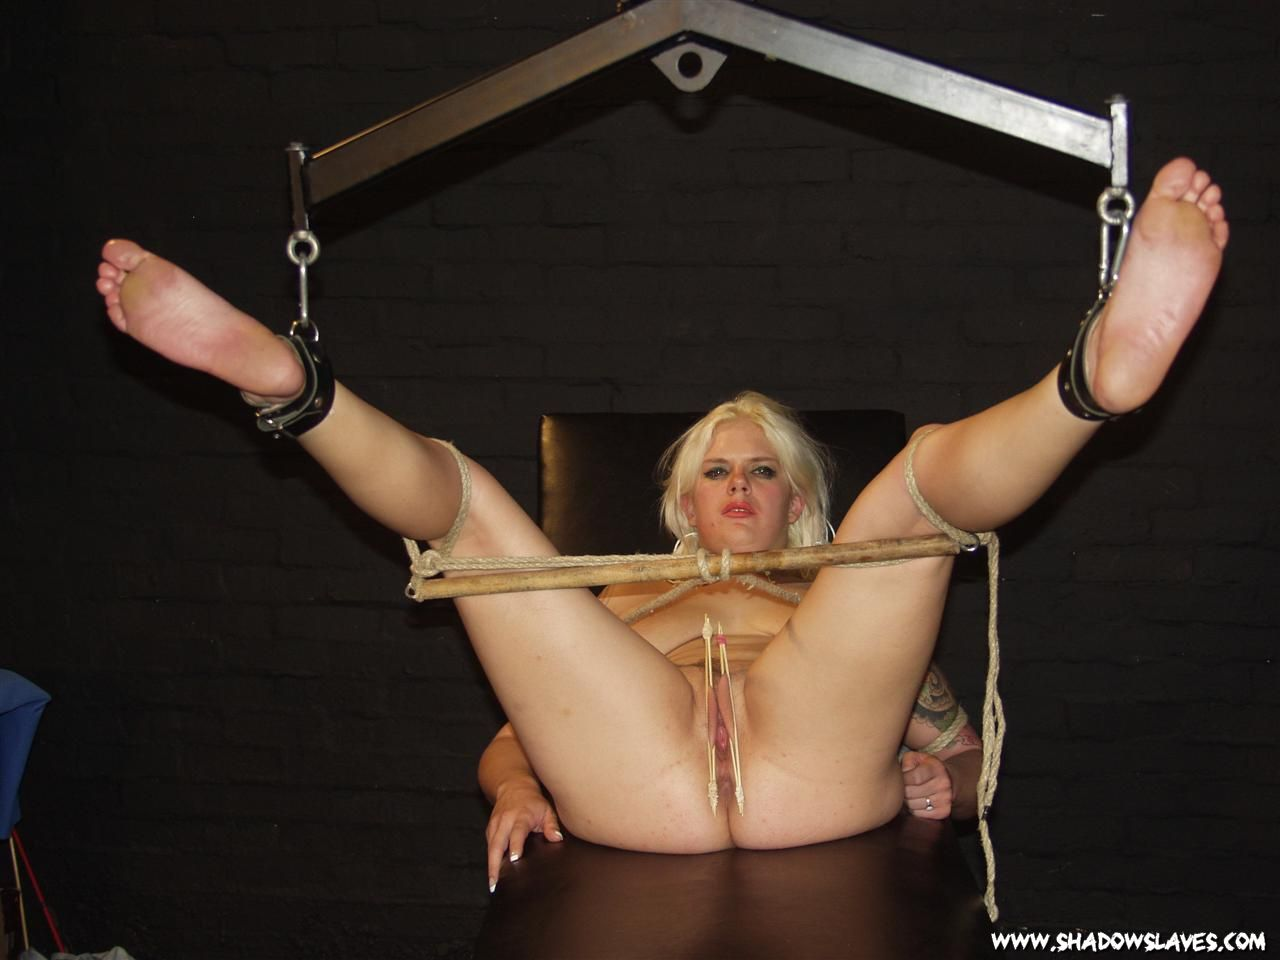 Gagged amateur slaves sextoy domination and